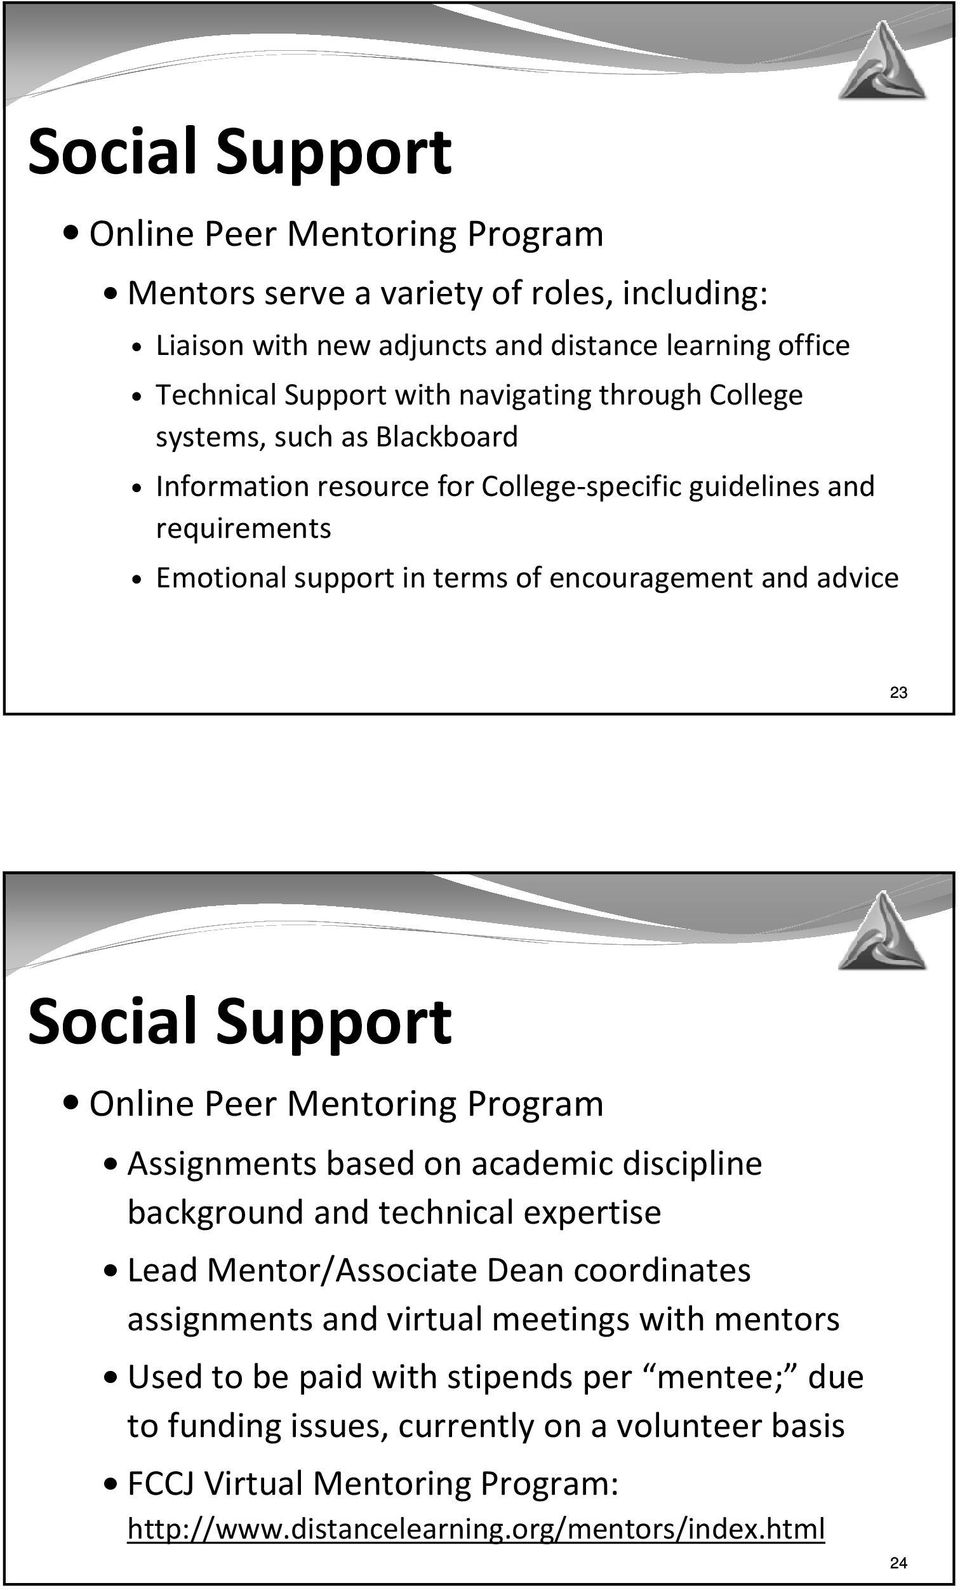 Support Online Peer Mentoring Program Assignments based on academic discipline background and technical expertise Lead Mentor/Associate Dean coordinates assignments and virtual